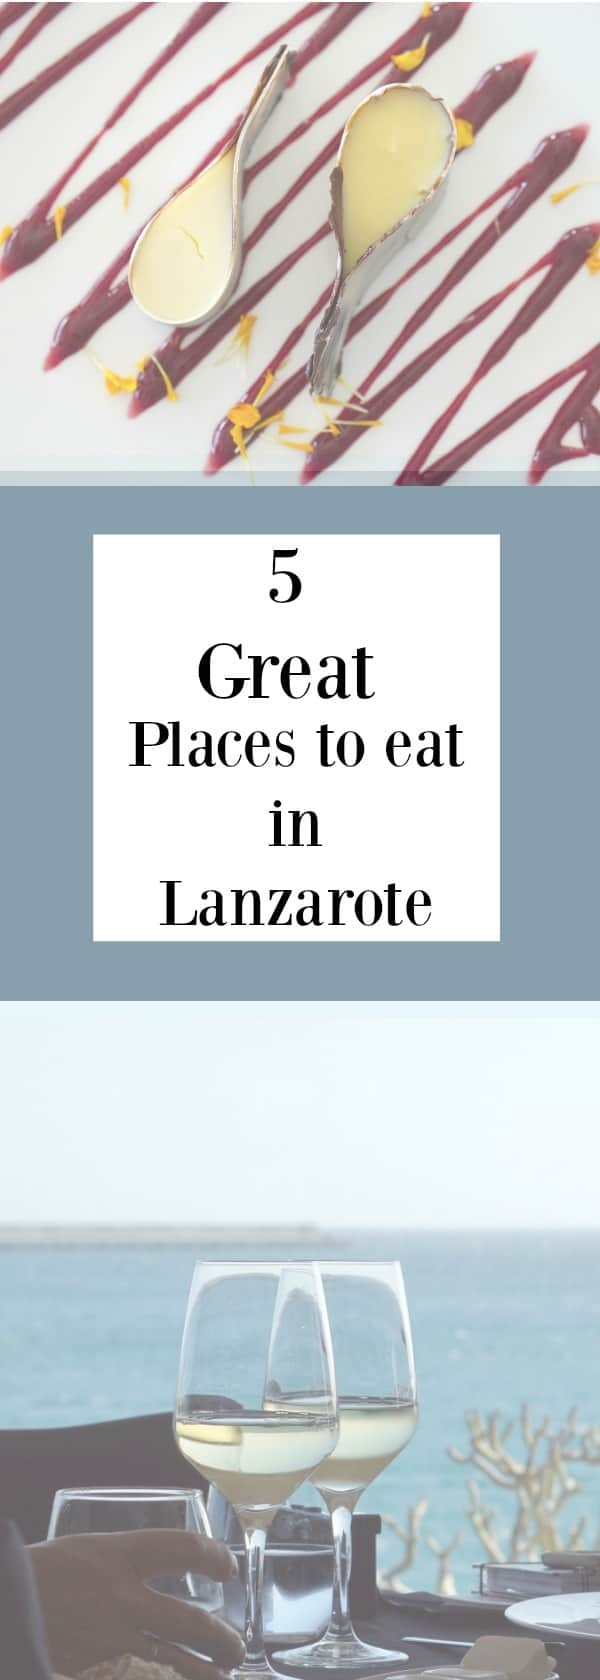 Where to eat in Lanzarote here are 5 great places to eat that will offer unique experiences on the Island 1